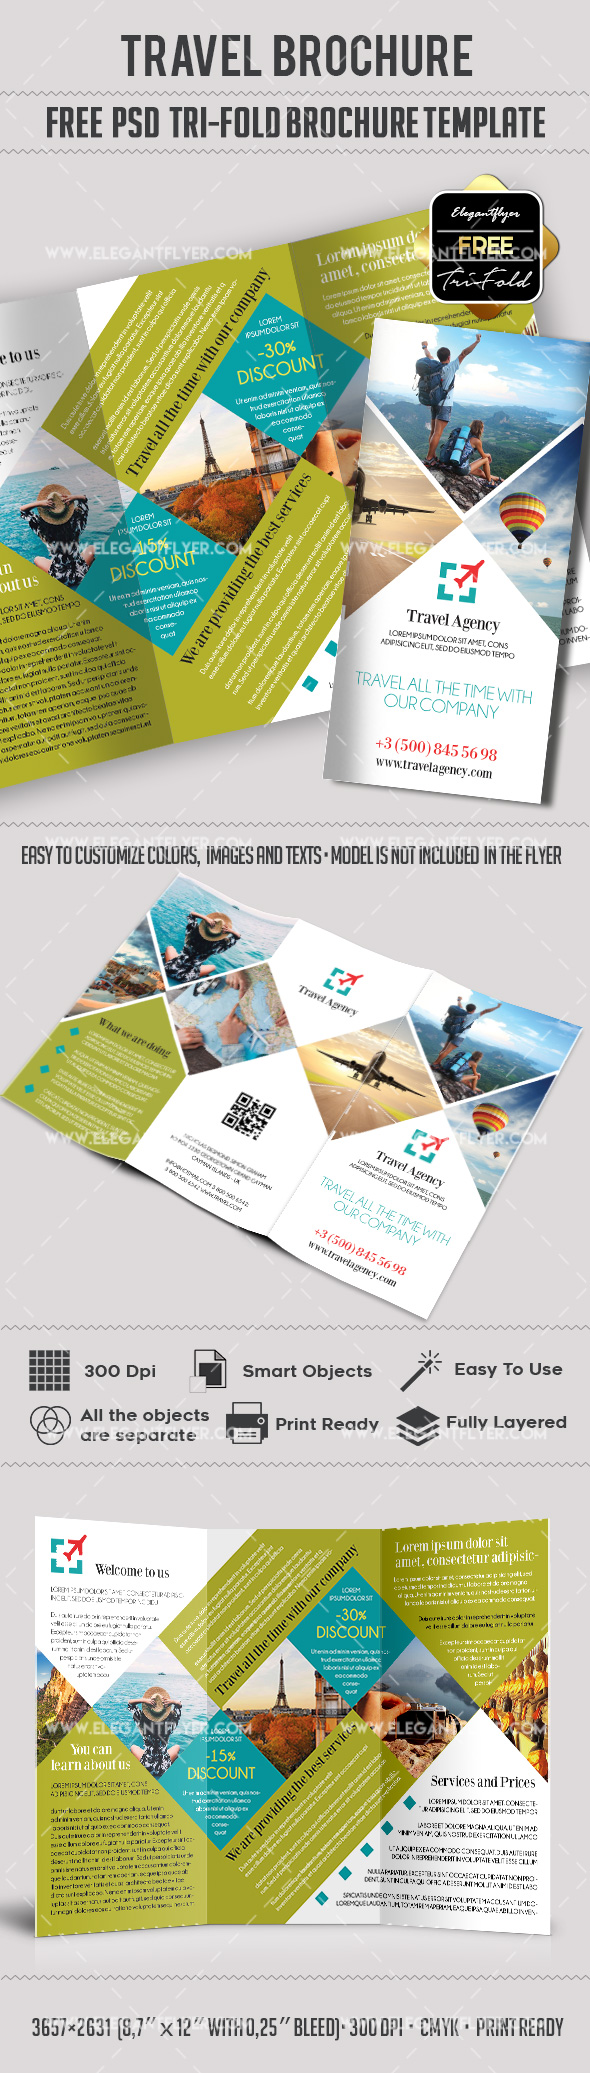 Travel – Free PSD Tri-Fold PSD Brochure Template